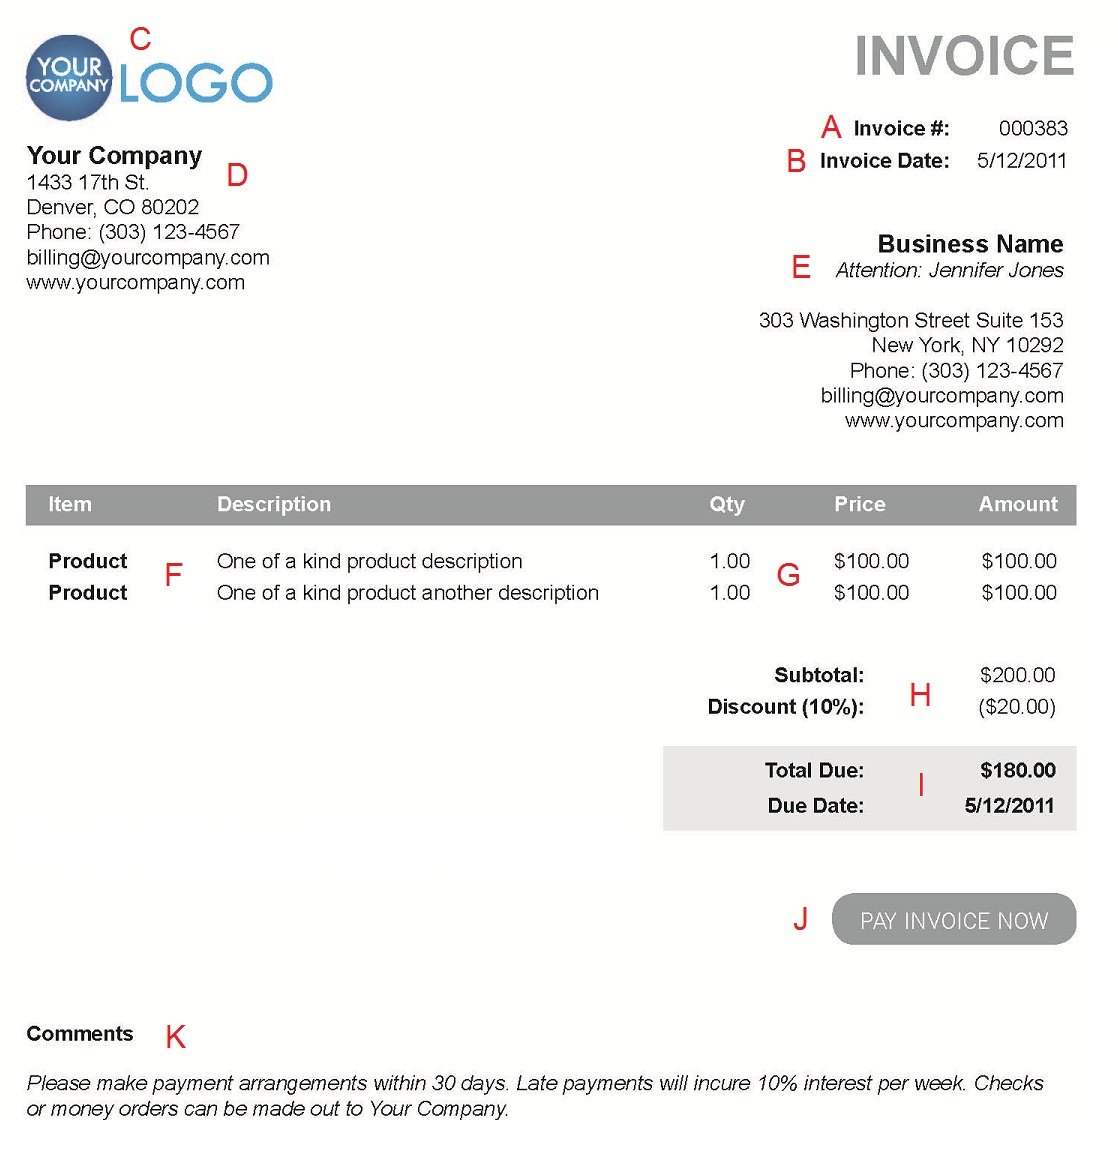 Soulfulpowerus  Picturesque The  Different Sections Of An Electronic Payment Invoice With Great A  With Delectable Quickbooks Receipt Scanner Also Fake Taxi Receipt In Addition Receipt Template Free And Apple Mail Read Receipt As Well As Target Exchange Policy No Receipt Additionally Vat Receipt From Paysimplecom With Soulfulpowerus  Great The  Different Sections Of An Electronic Payment Invoice With Delectable A  And Picturesque Quickbooks Receipt Scanner Also Fake Taxi Receipt In Addition Receipt Template Free From Paysimplecom